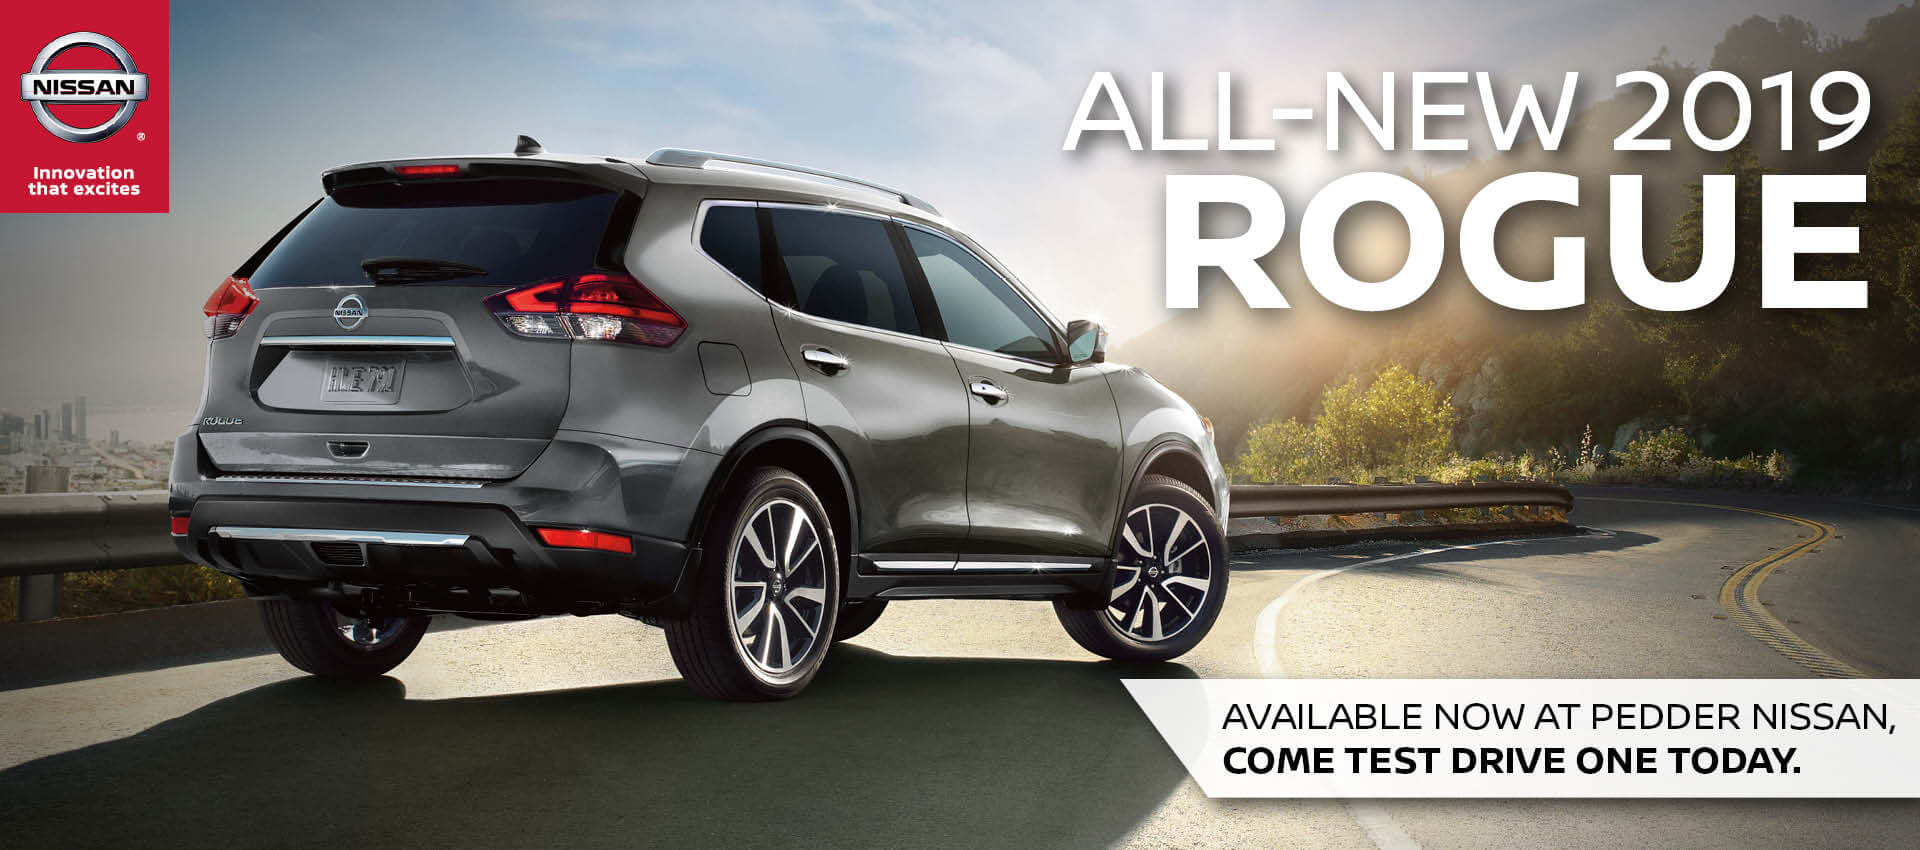 All-New 2018 Rogue